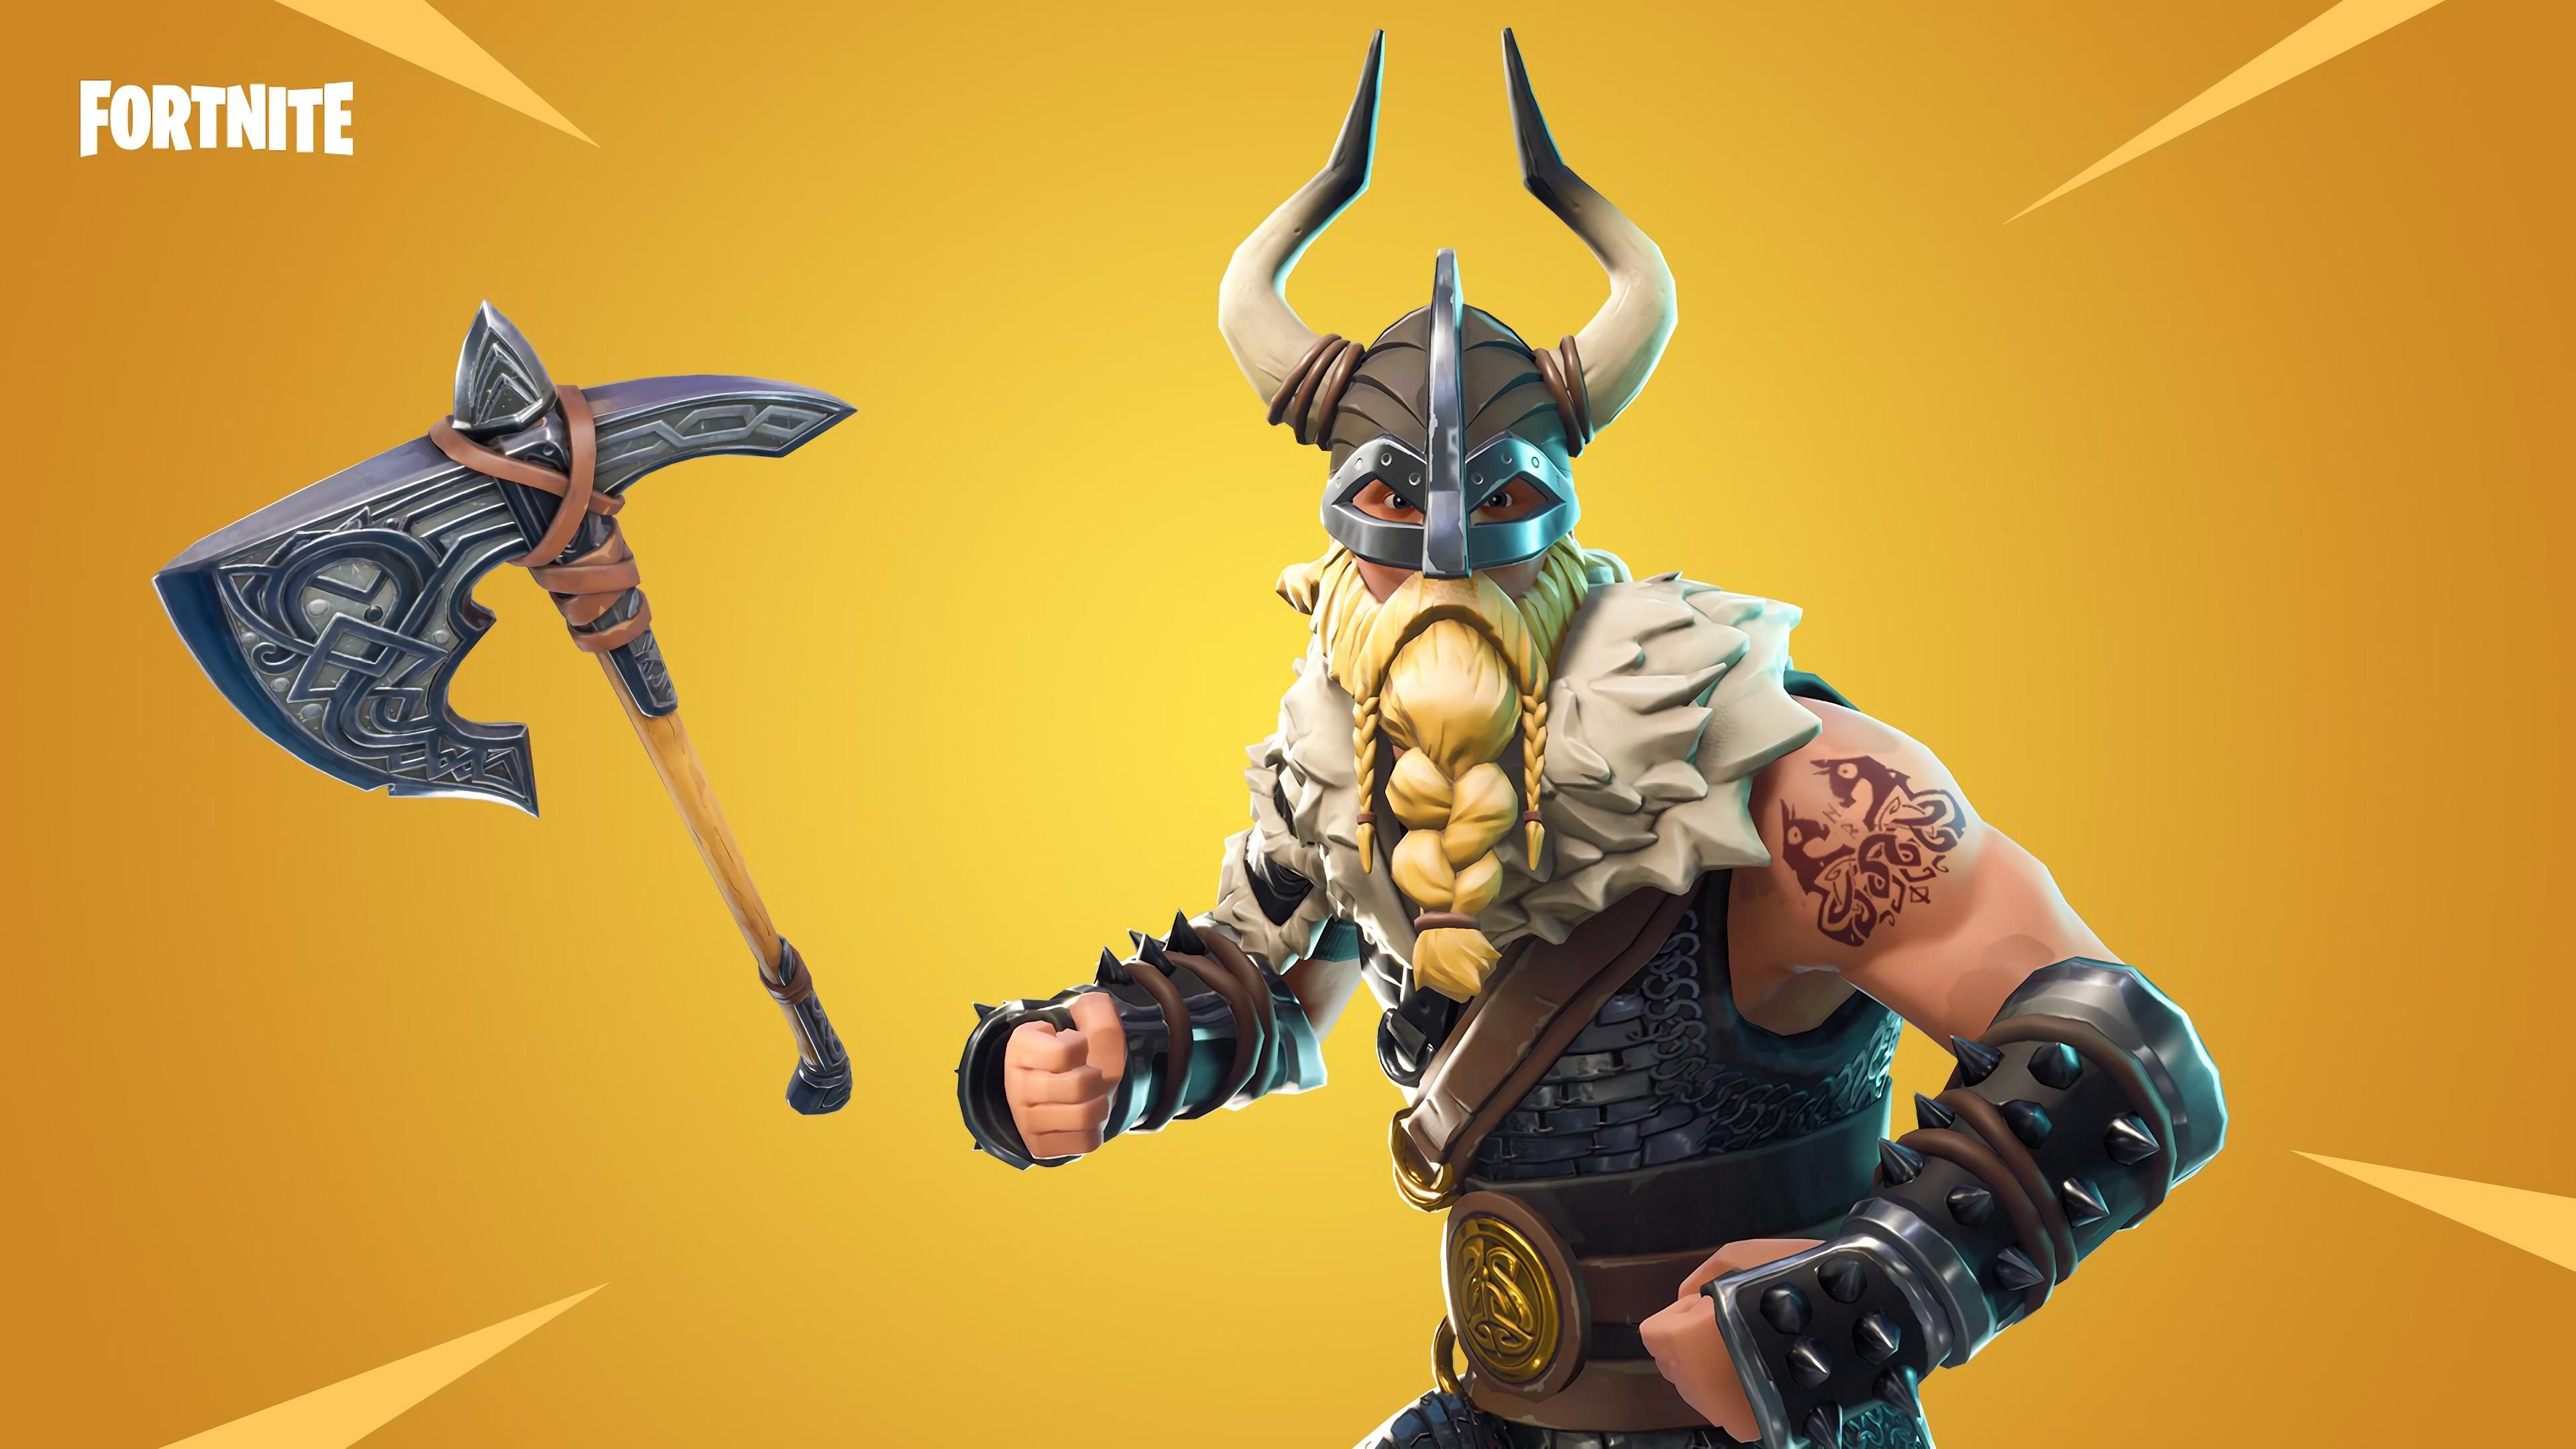 Magnus 4K 8K HD Fortnite Battle Royale Wallpaper